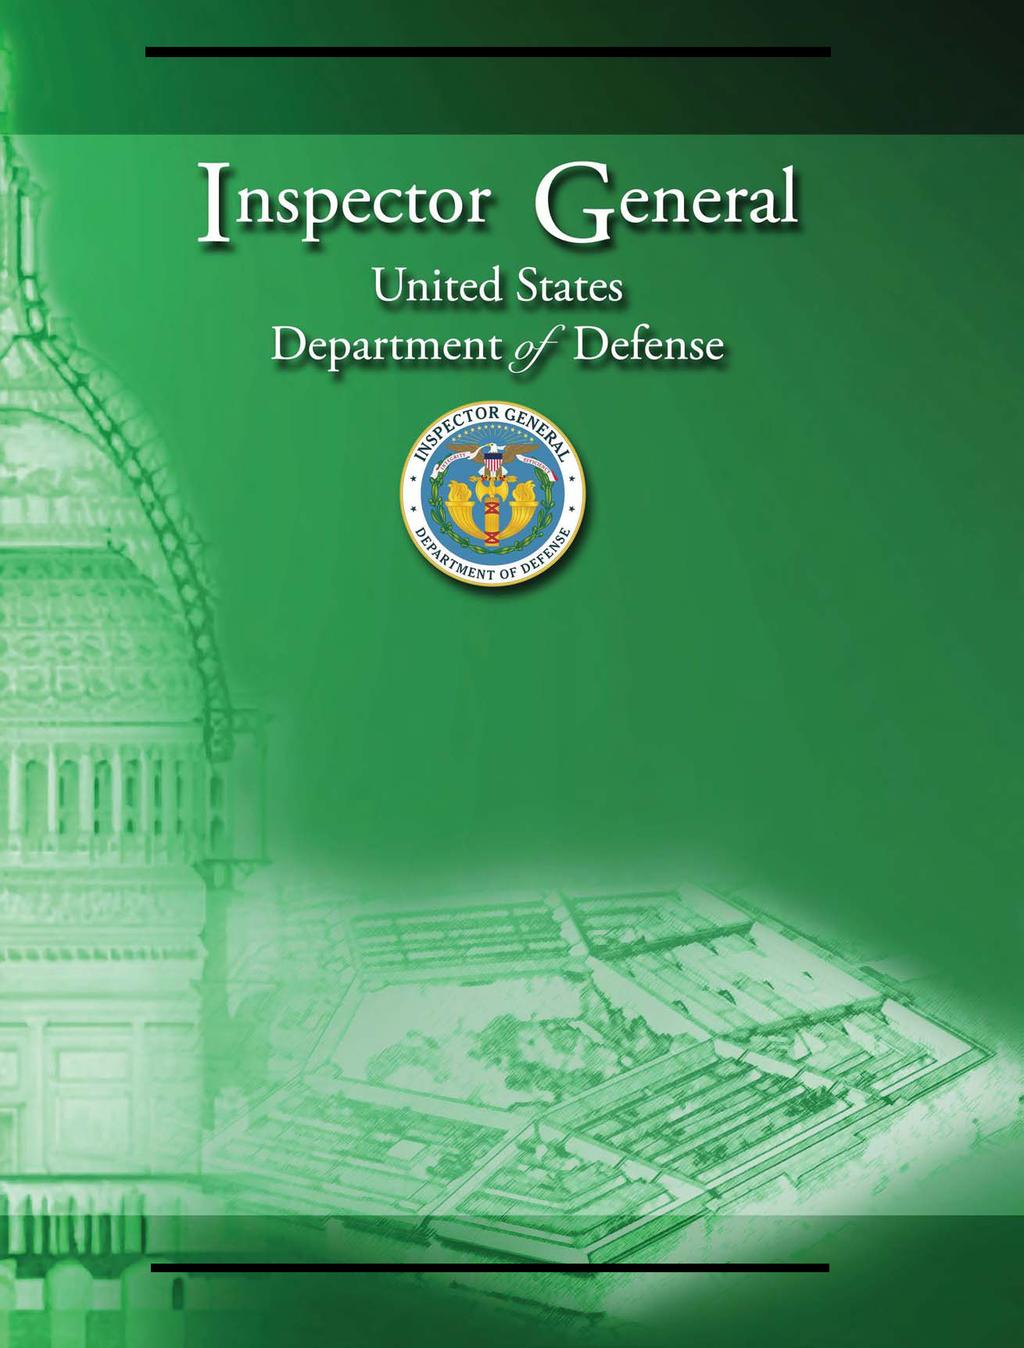 H08L107249100 July 10, 2009 ALLEGED MISCONDUCT: GENERAL T. MICHAEL MOSELEY FORMER CHIEF OF STAFF, U.S. AIR FORCE Warning The enclosed document(s) is (are) the property of the Department of Defense, Office of Inspector General.